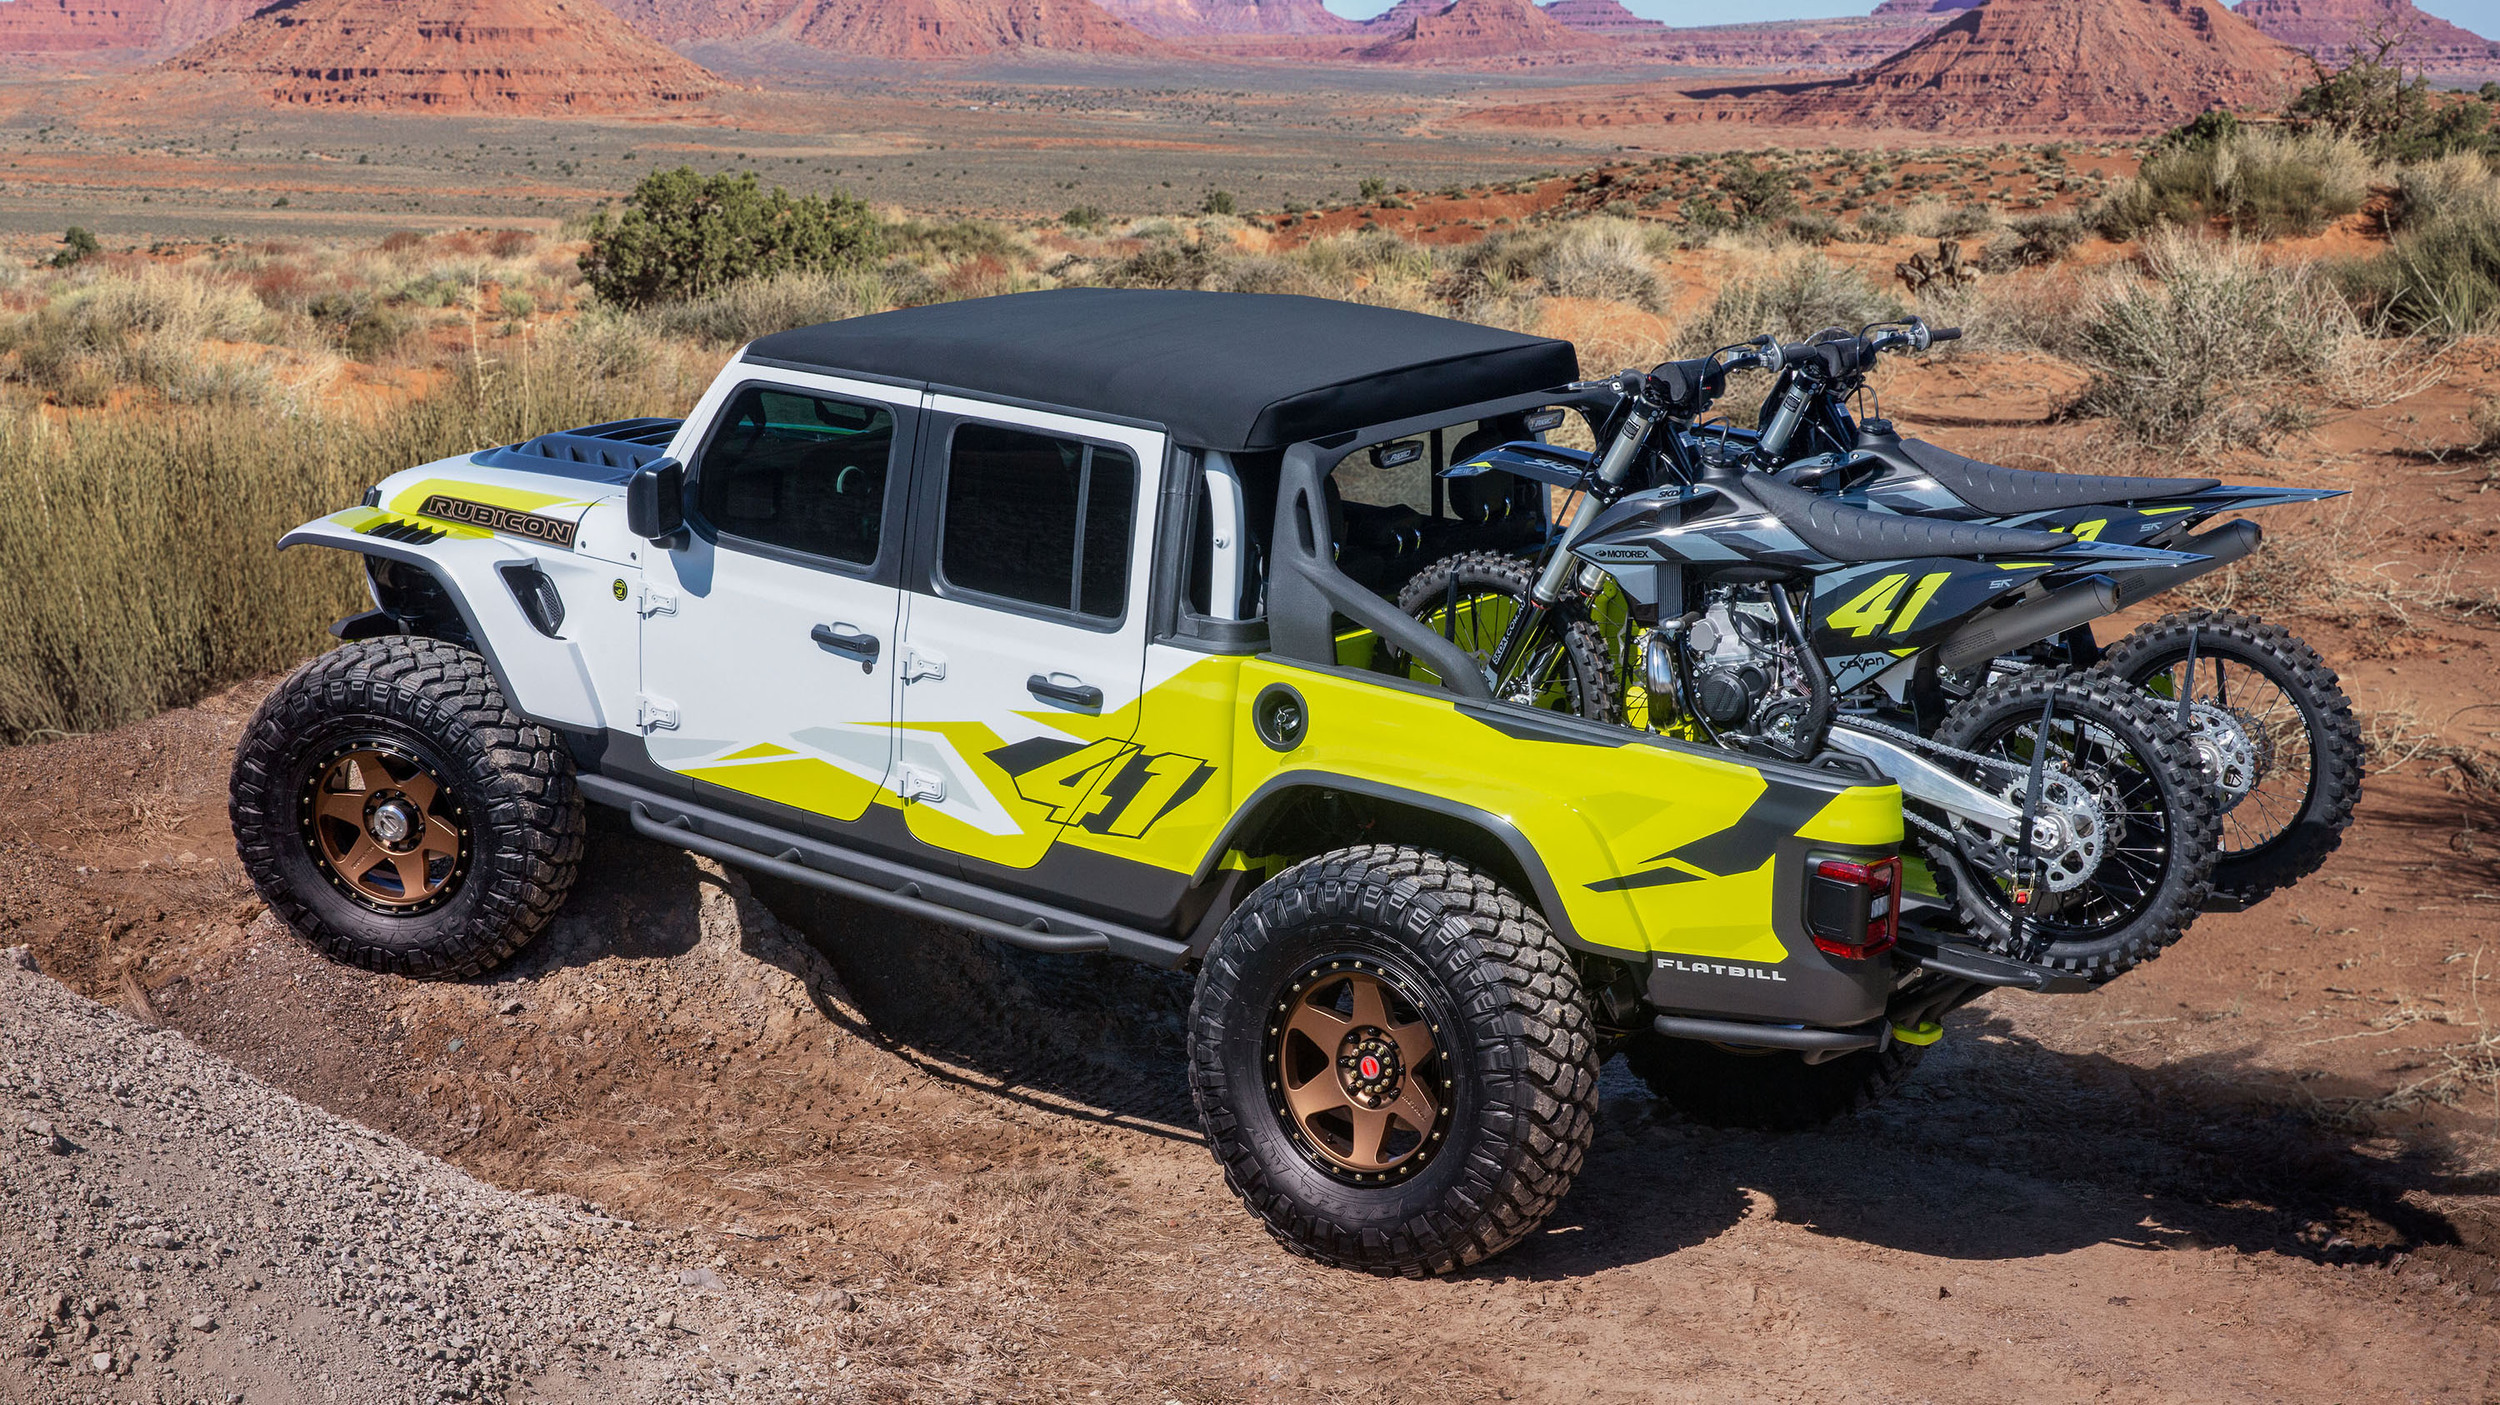 Gladiator Front And Center As 2019 Jeep Moab Easter Safari ...